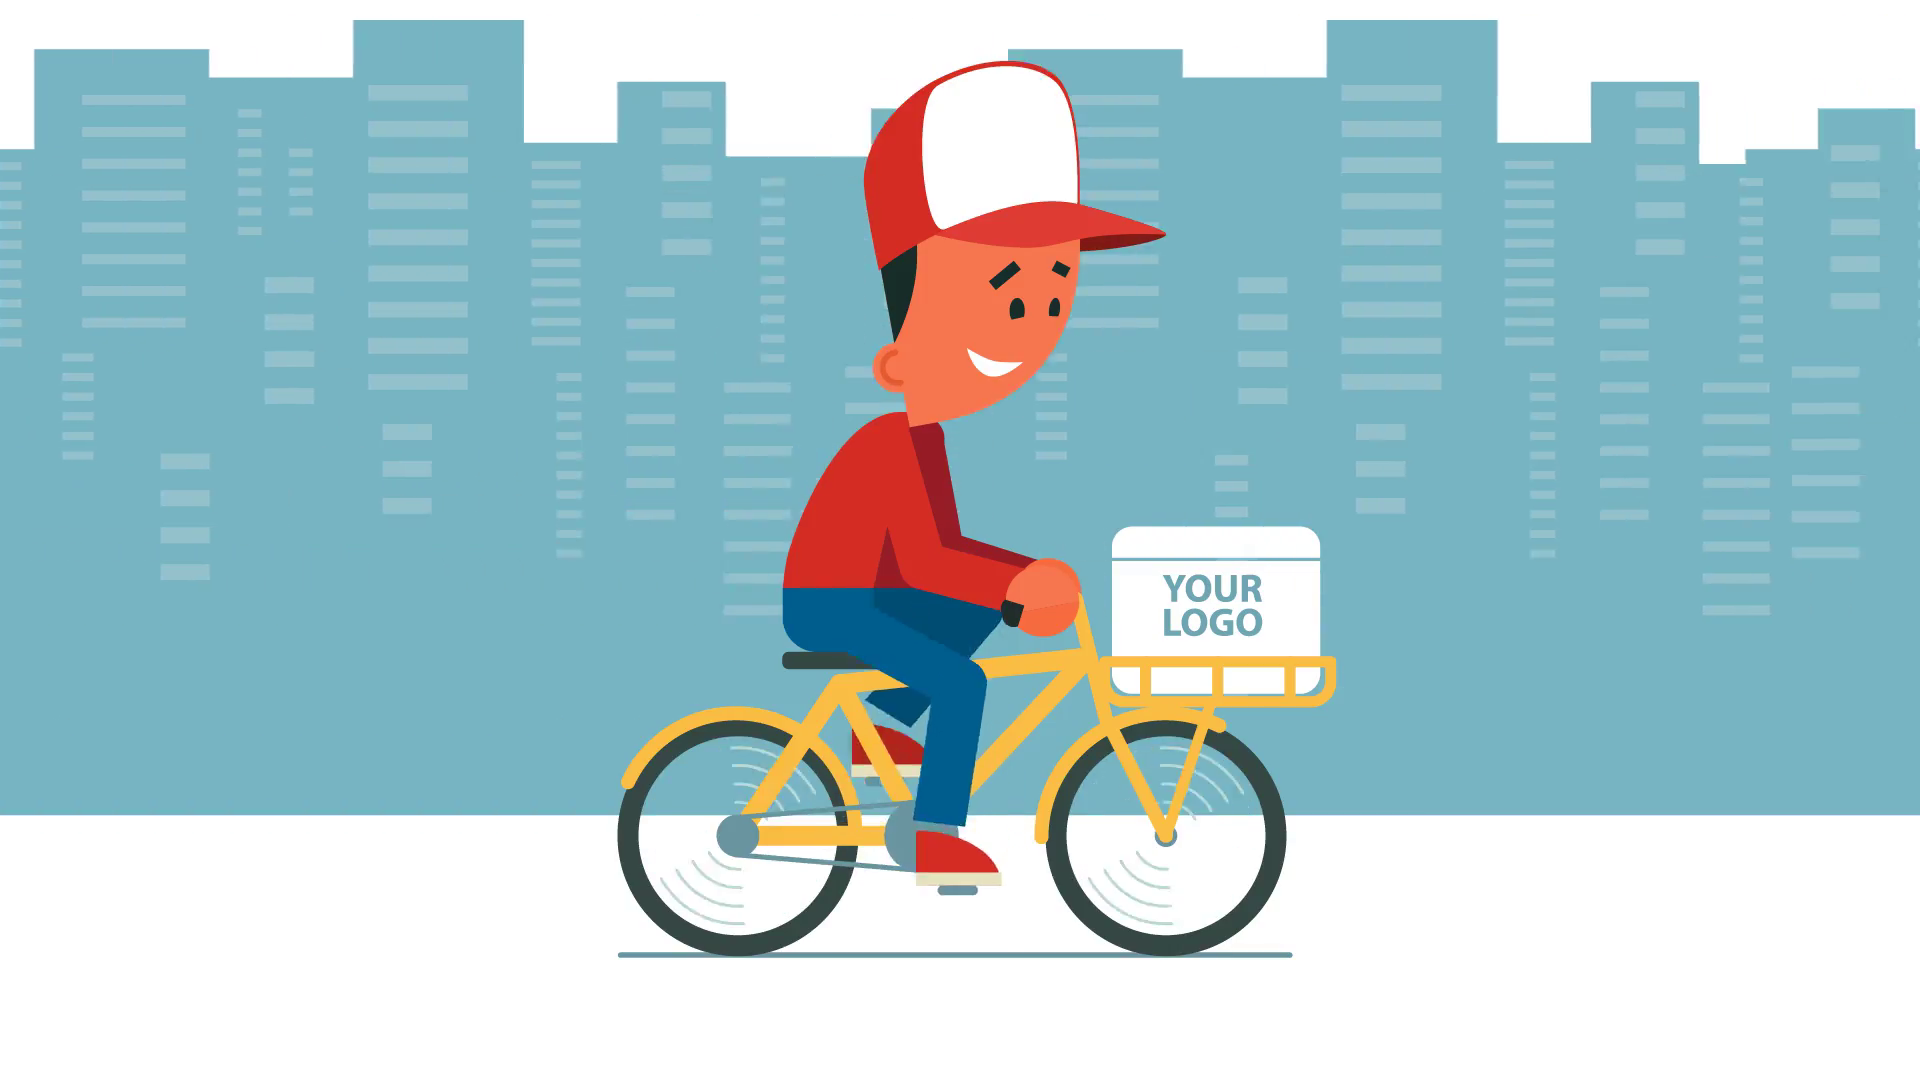 Png Delivery Man On Bike - Delivery service. Cartoon young man riding a bicycle with delivery ...